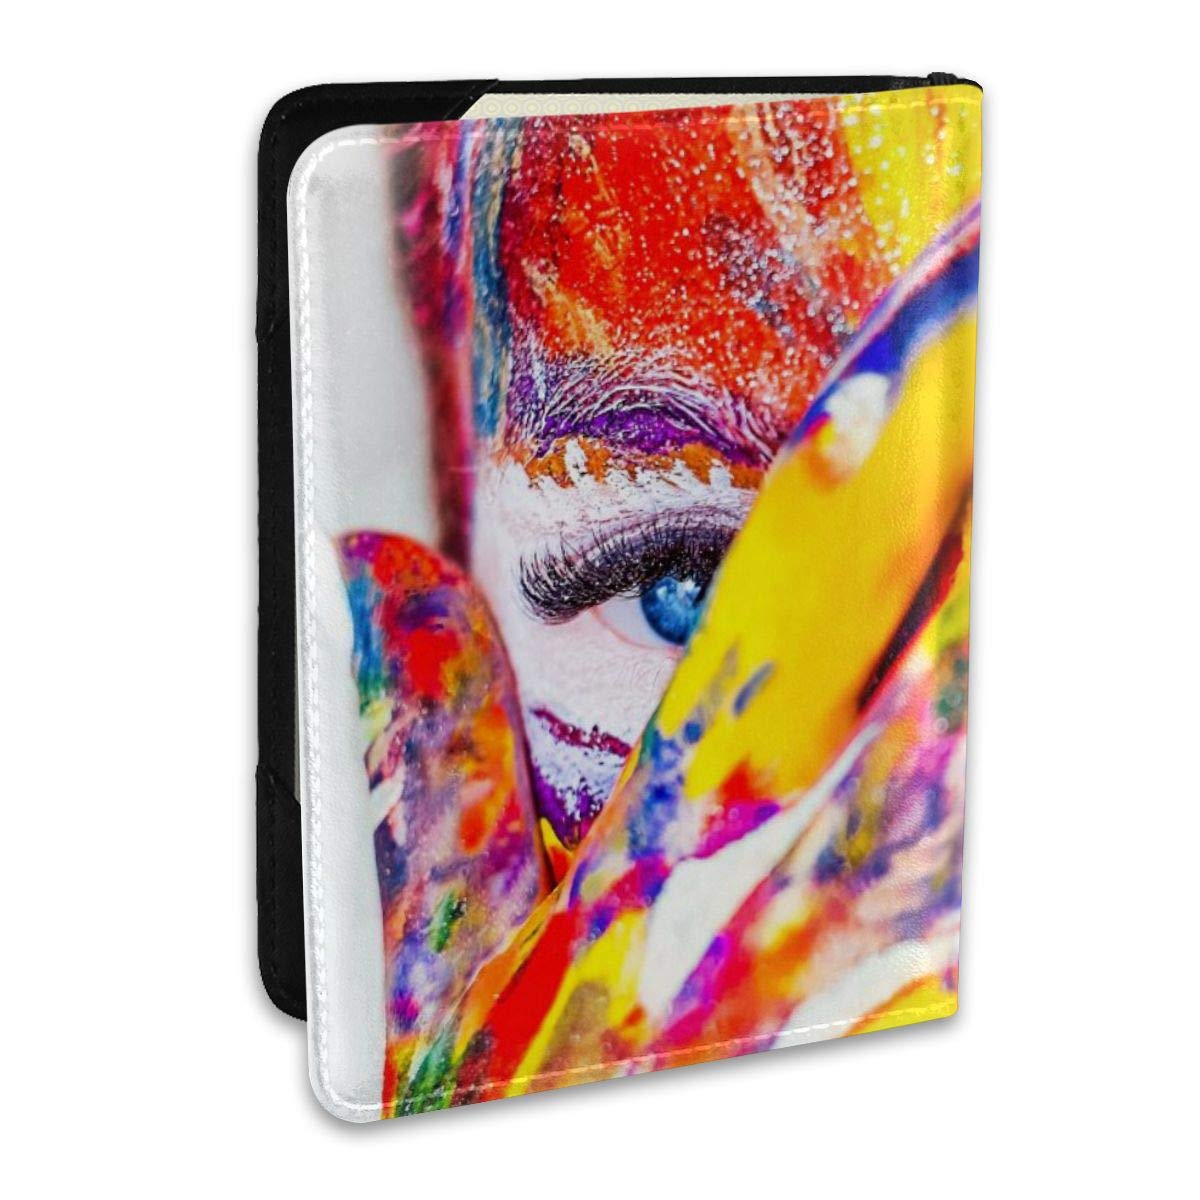 Paint Makeup Crazy Girl Fashion Leather Passport Holder Cover Case Travel Wallet 6.5 In